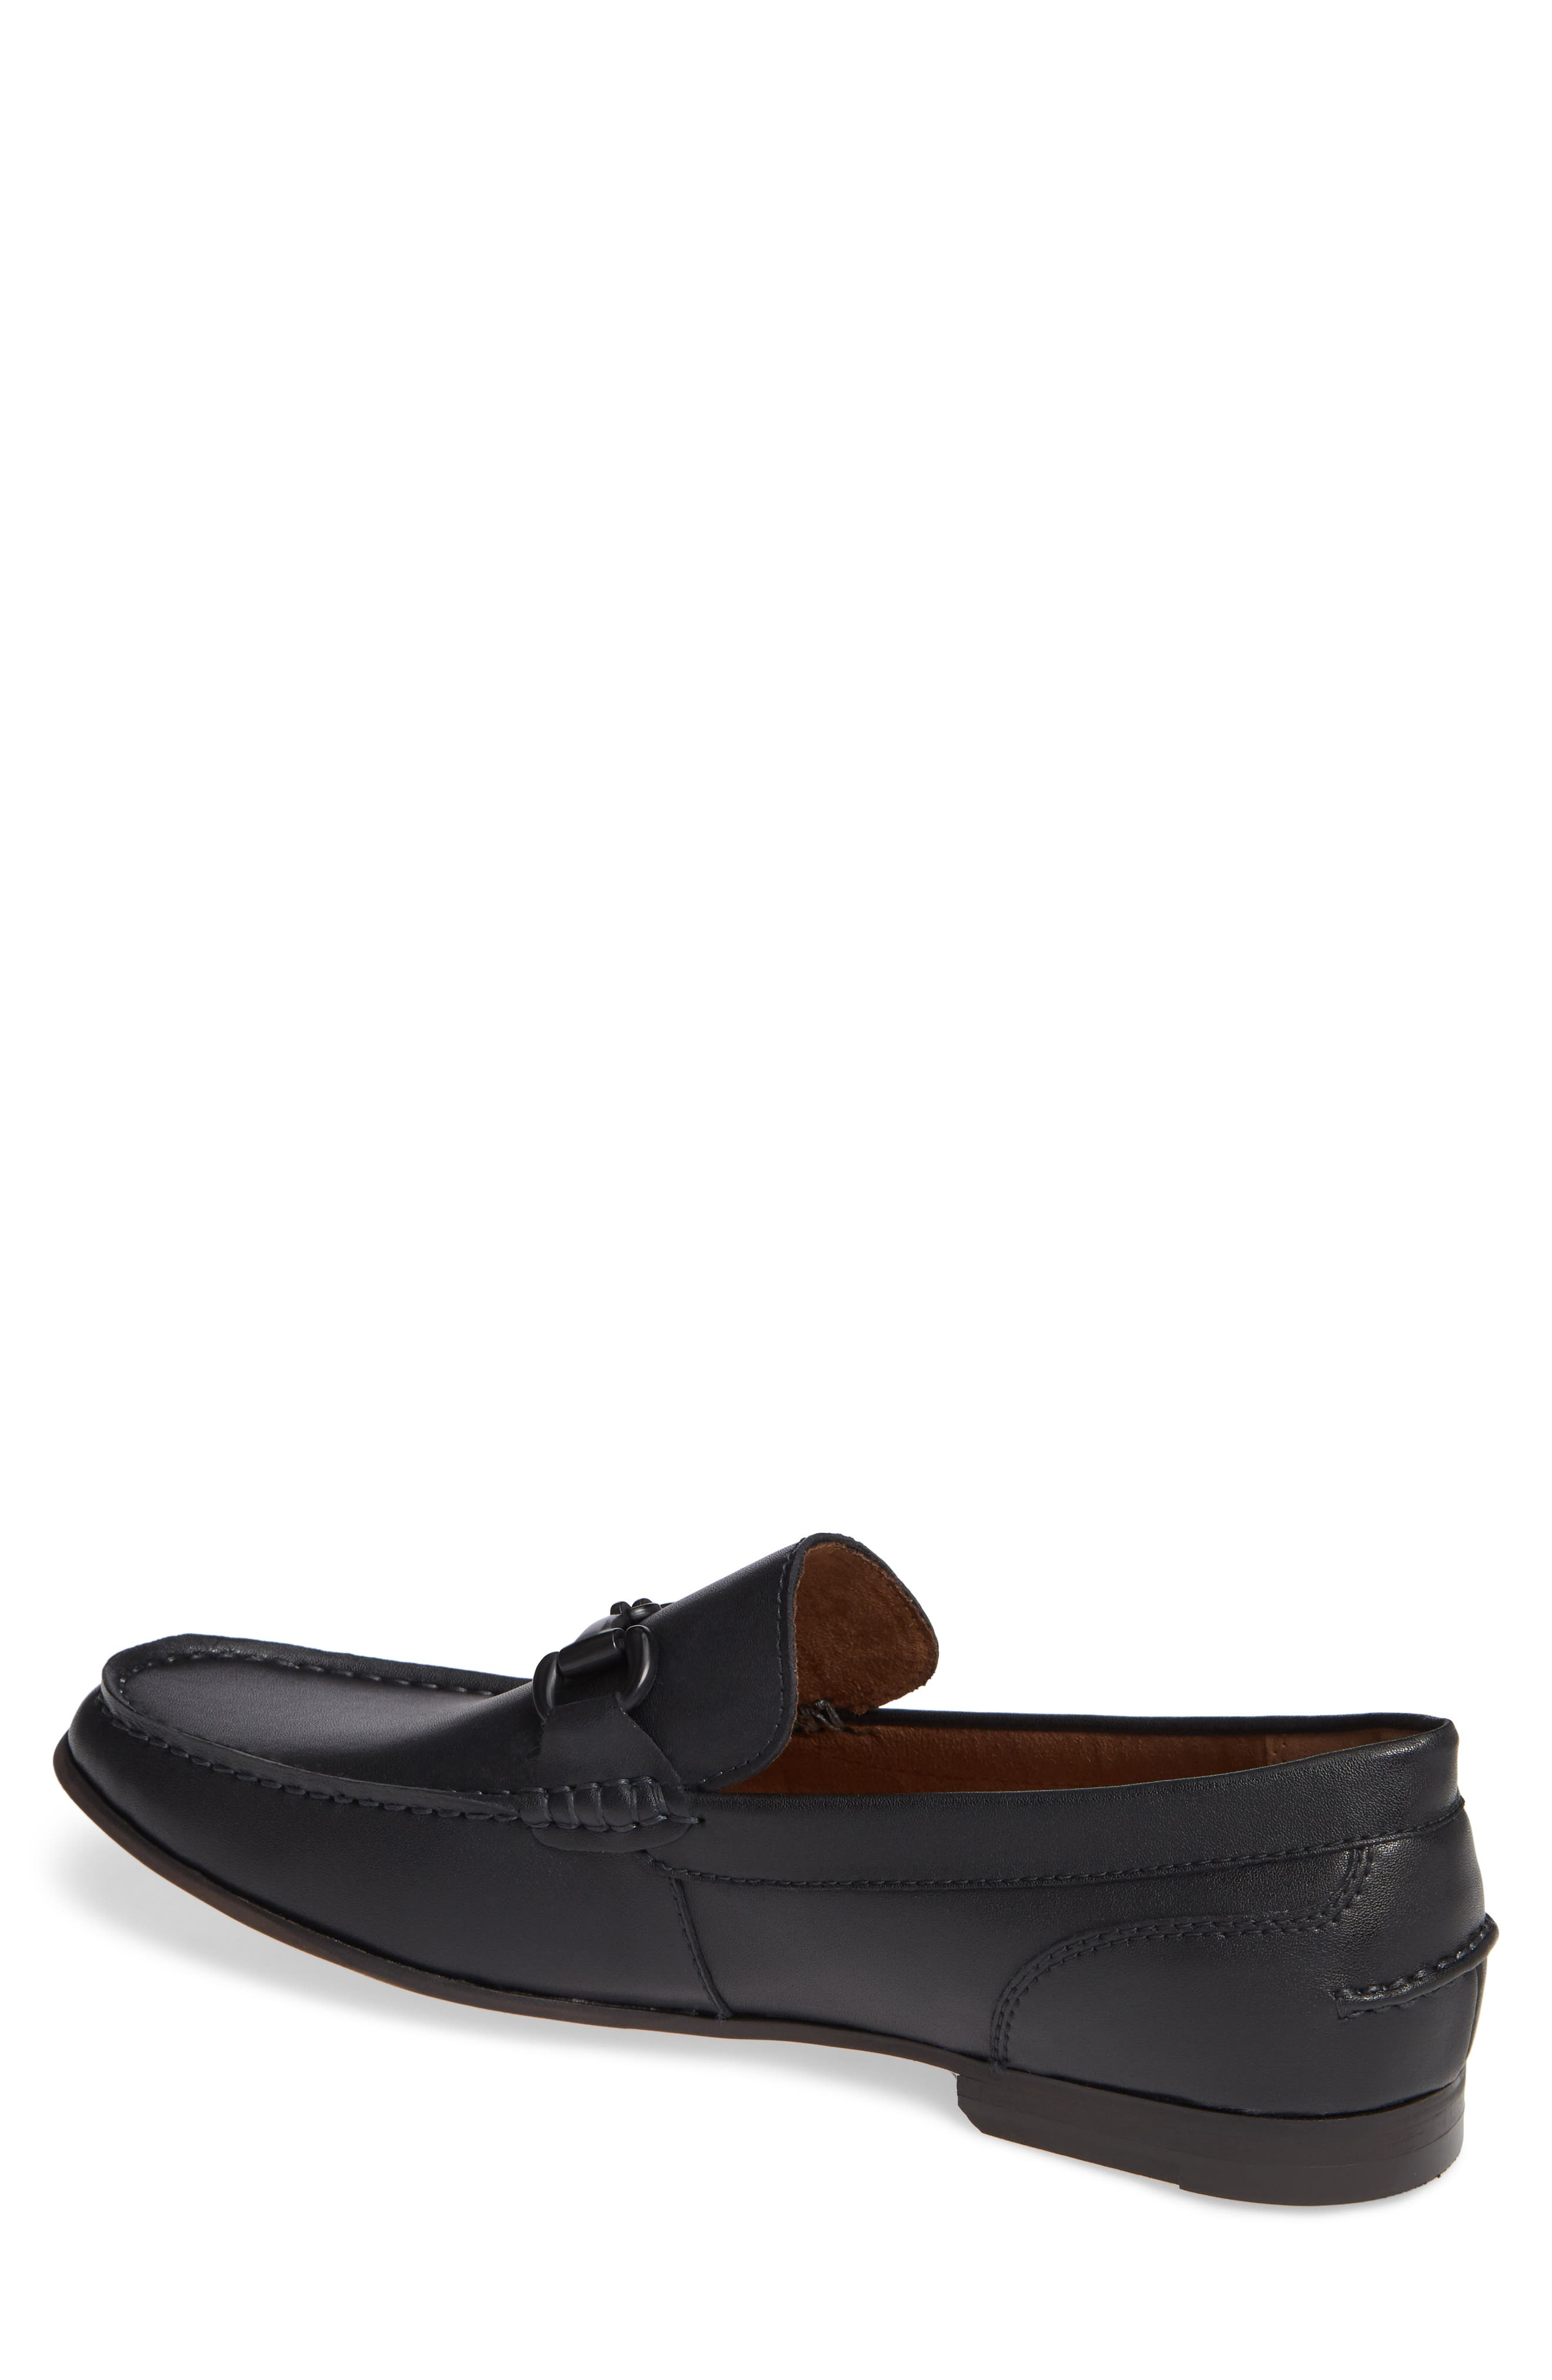 Crespo Loafer,                             Alternate thumbnail 2, color,                             BLACK SYNTHETIC LEATHER